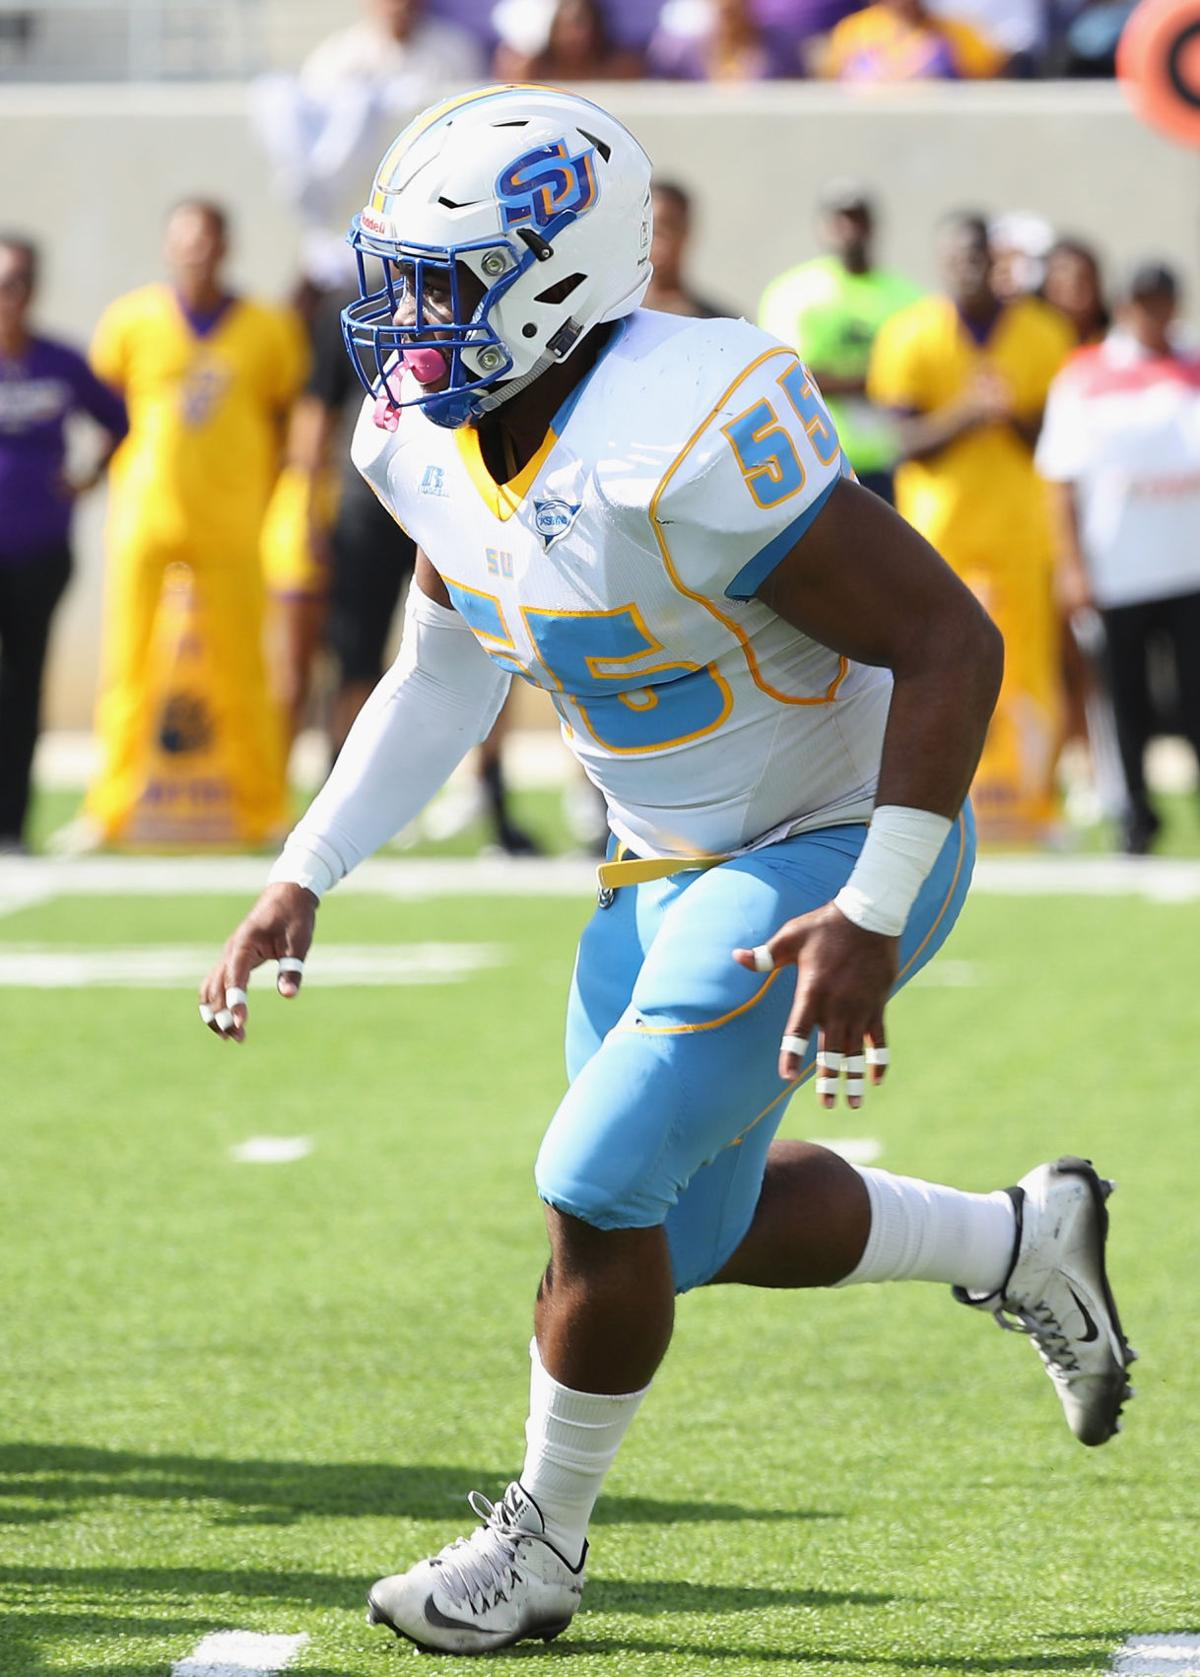 39 Strap It Up Or Quit Playing 39 Senior Lb Kentavious Preston Leads Defense In Tackles While In